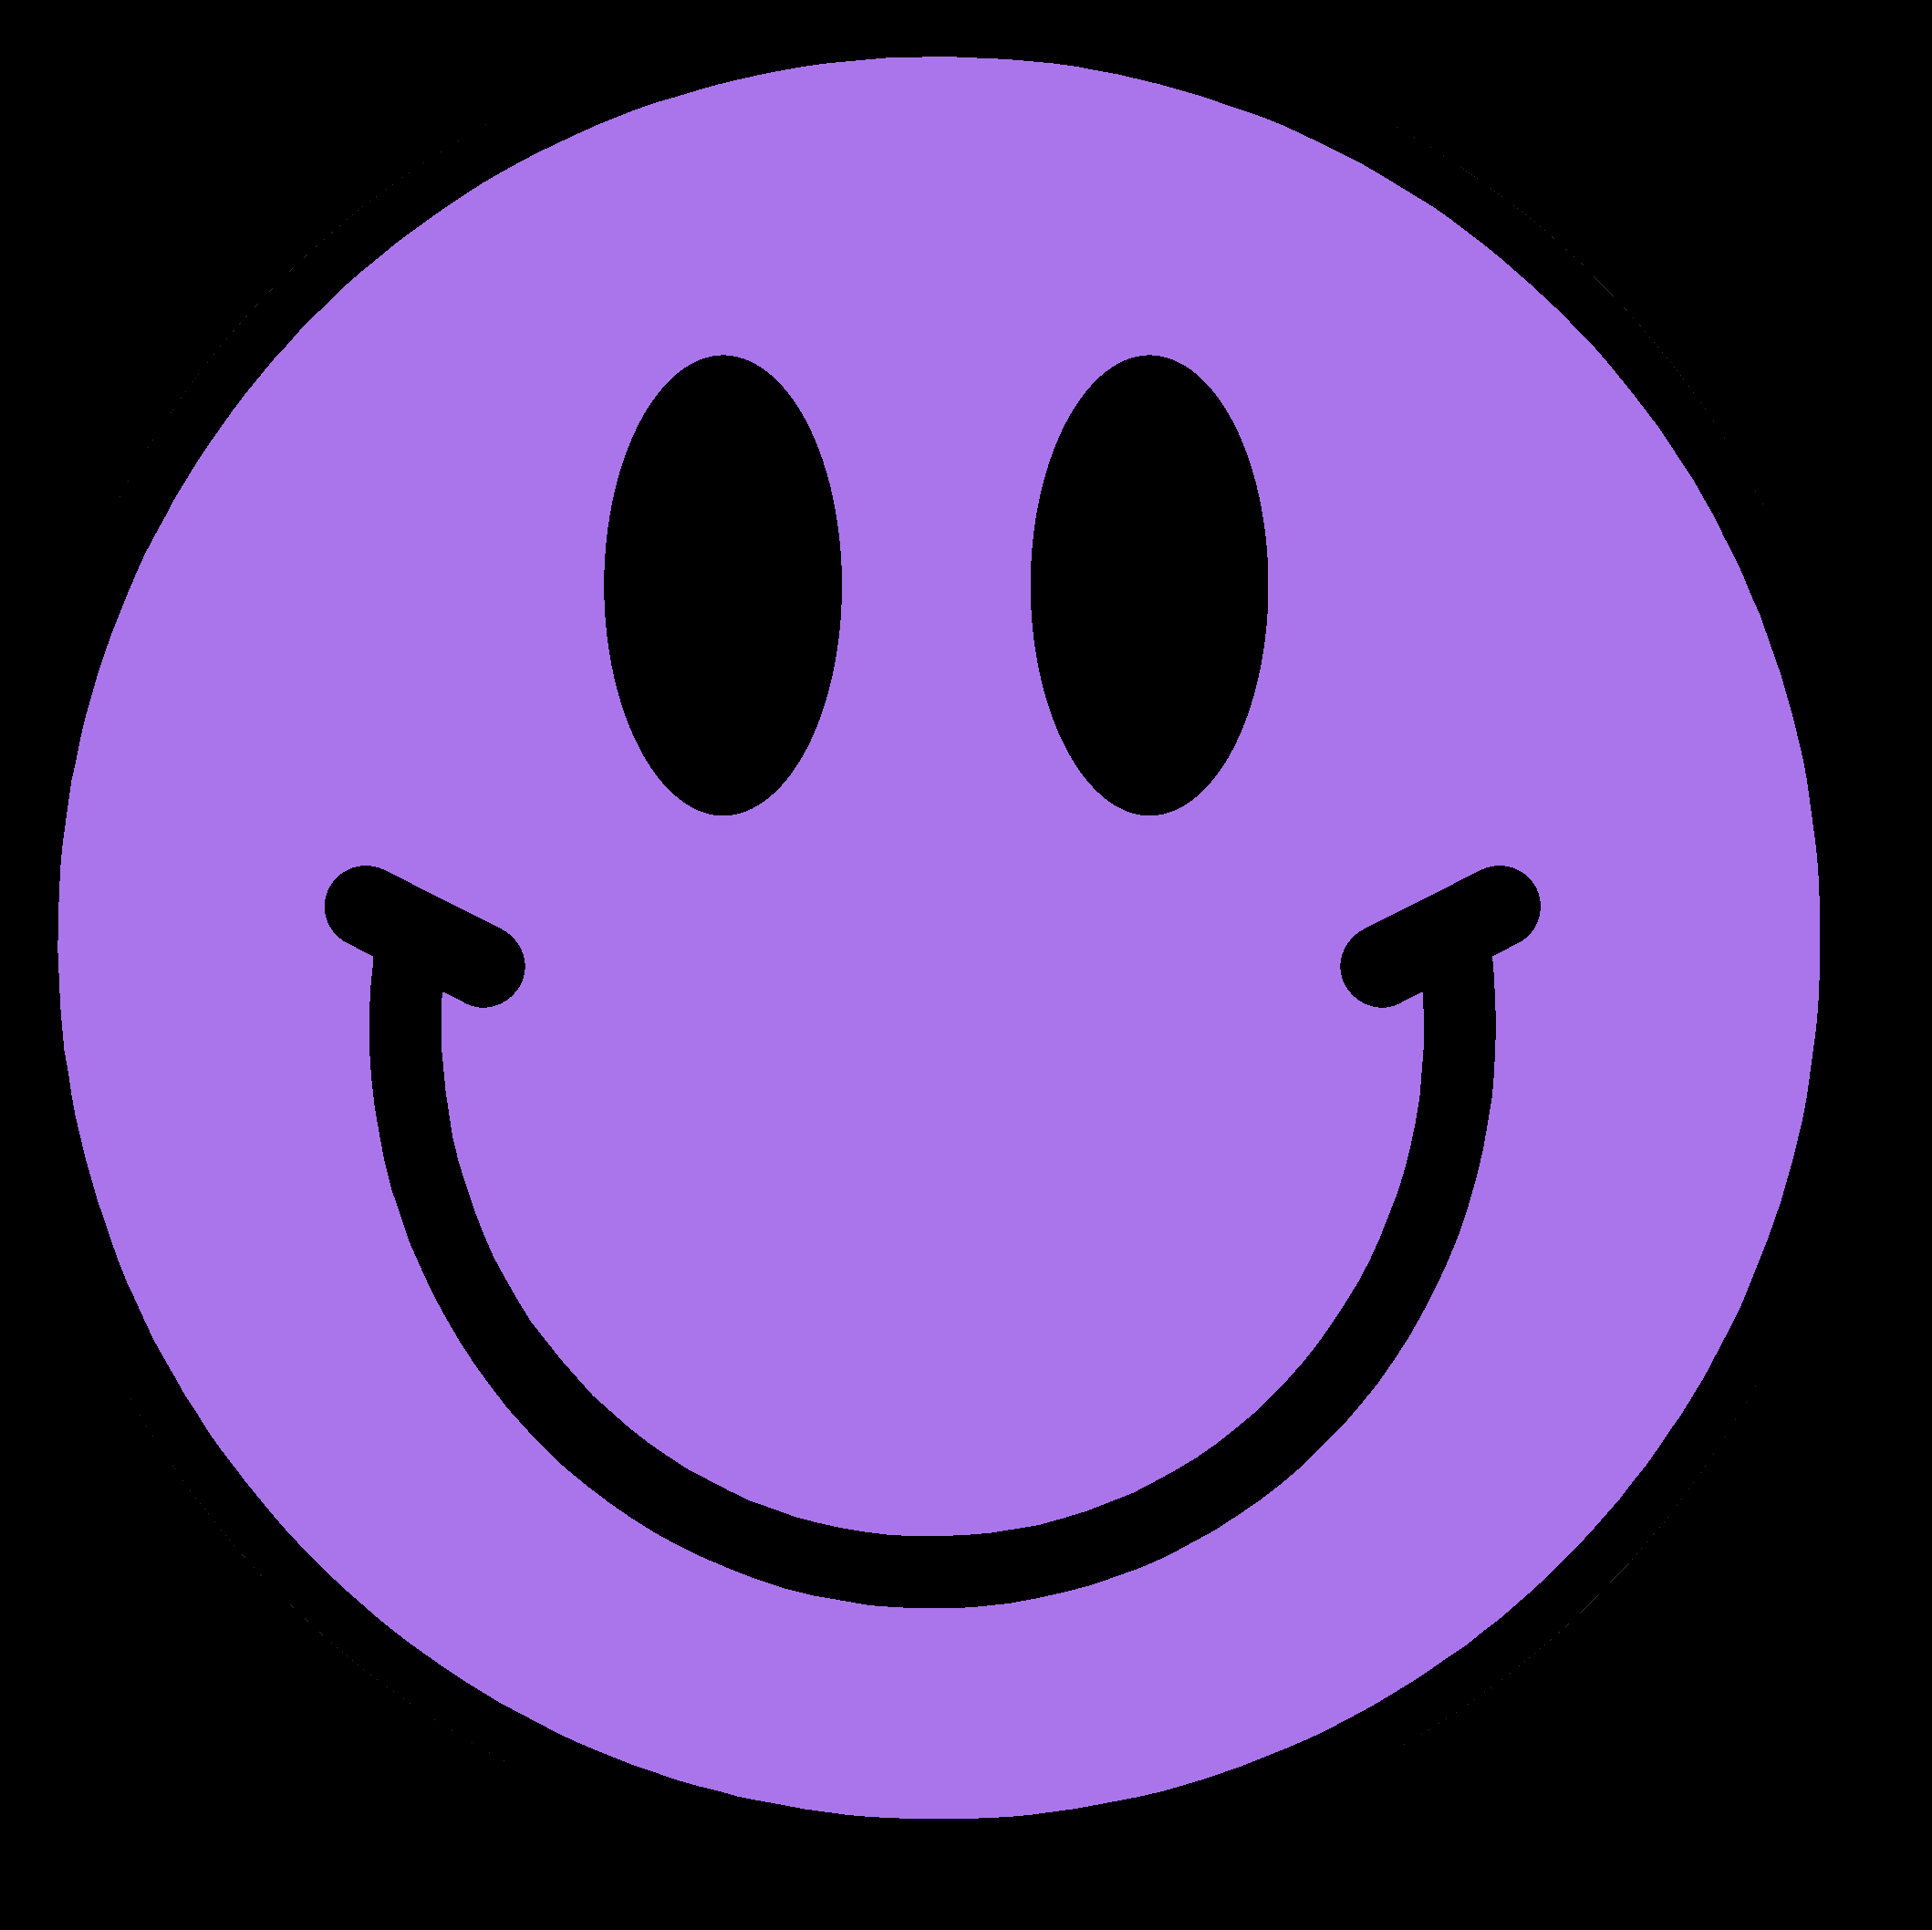 2118x2116 Smiley Face Graphic Clip Art On Widescreen Images Of Androids Hd